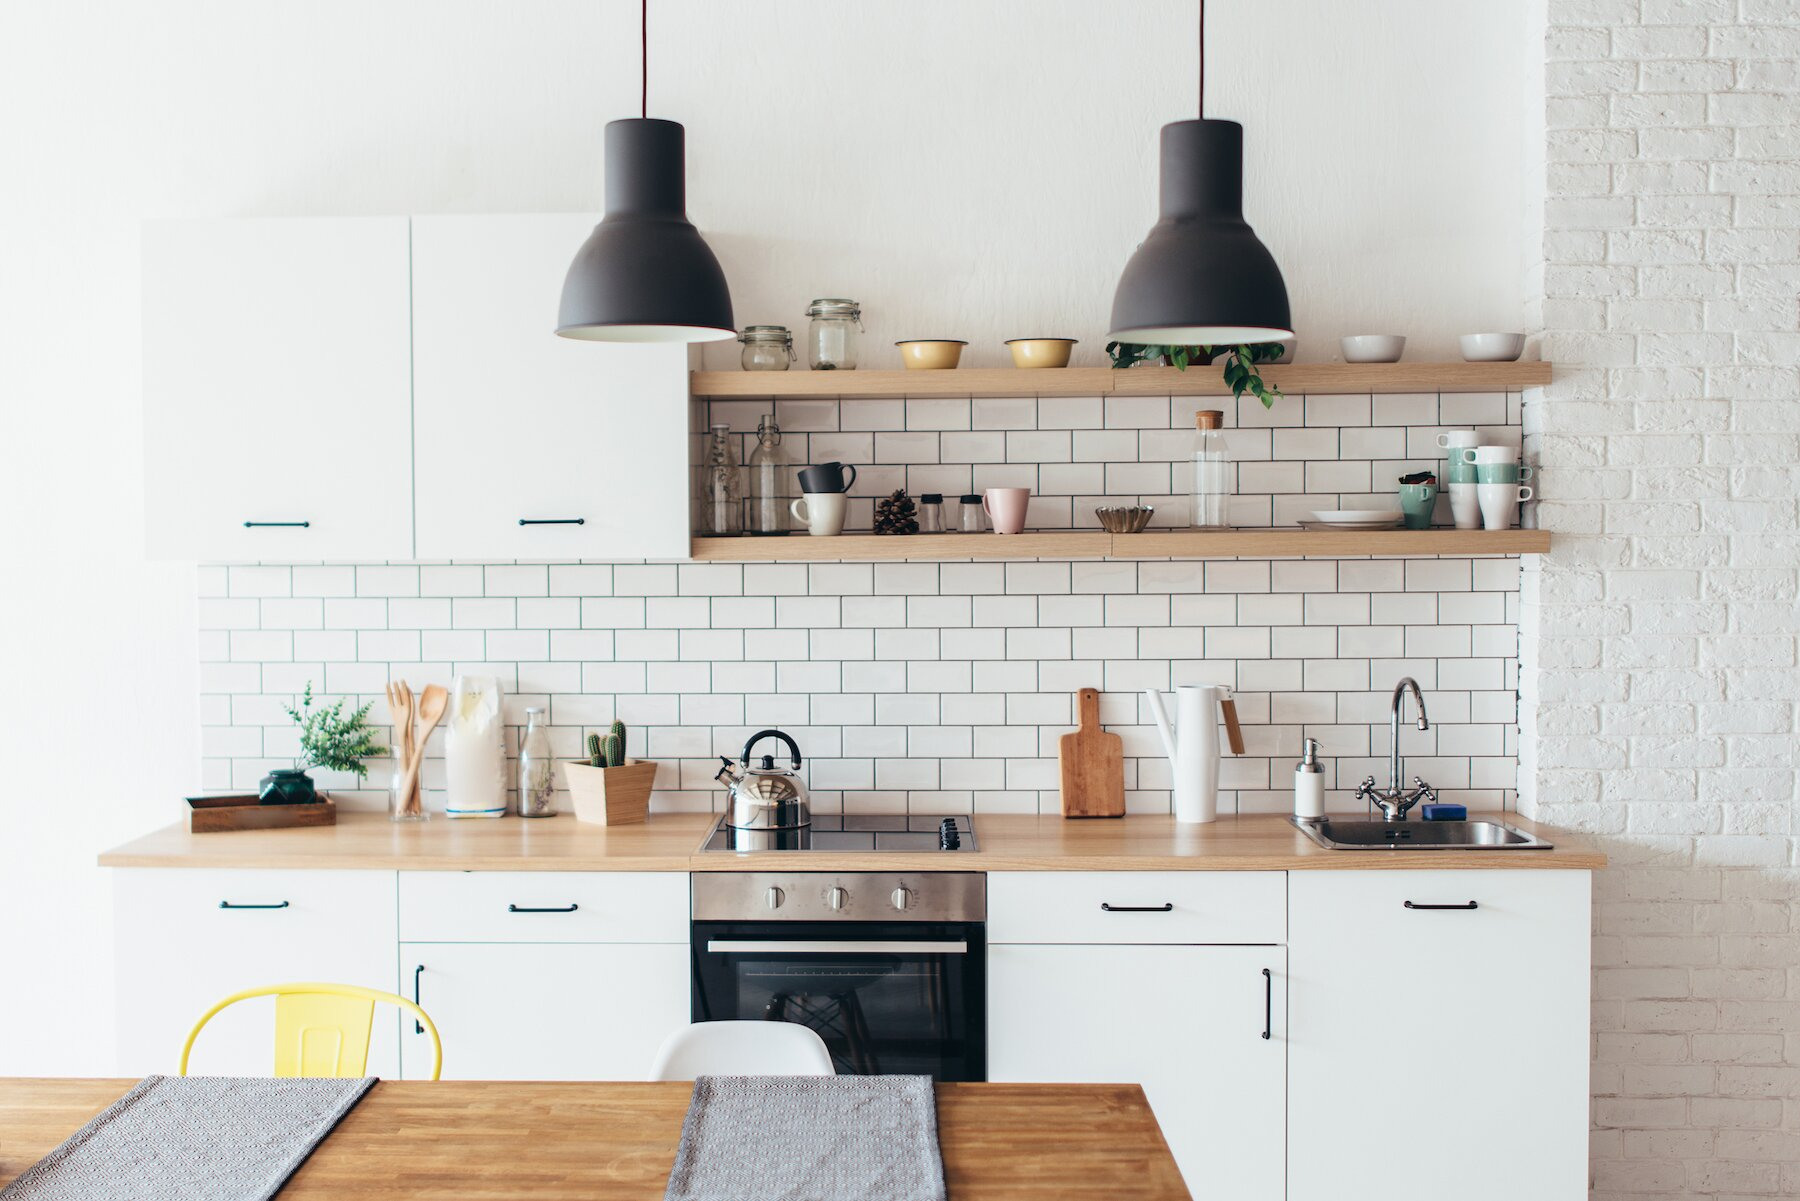 Simple Kitchen Cabinets This High Contrast Trend Is Taking Over Kitchen Cabinets | Real Simple